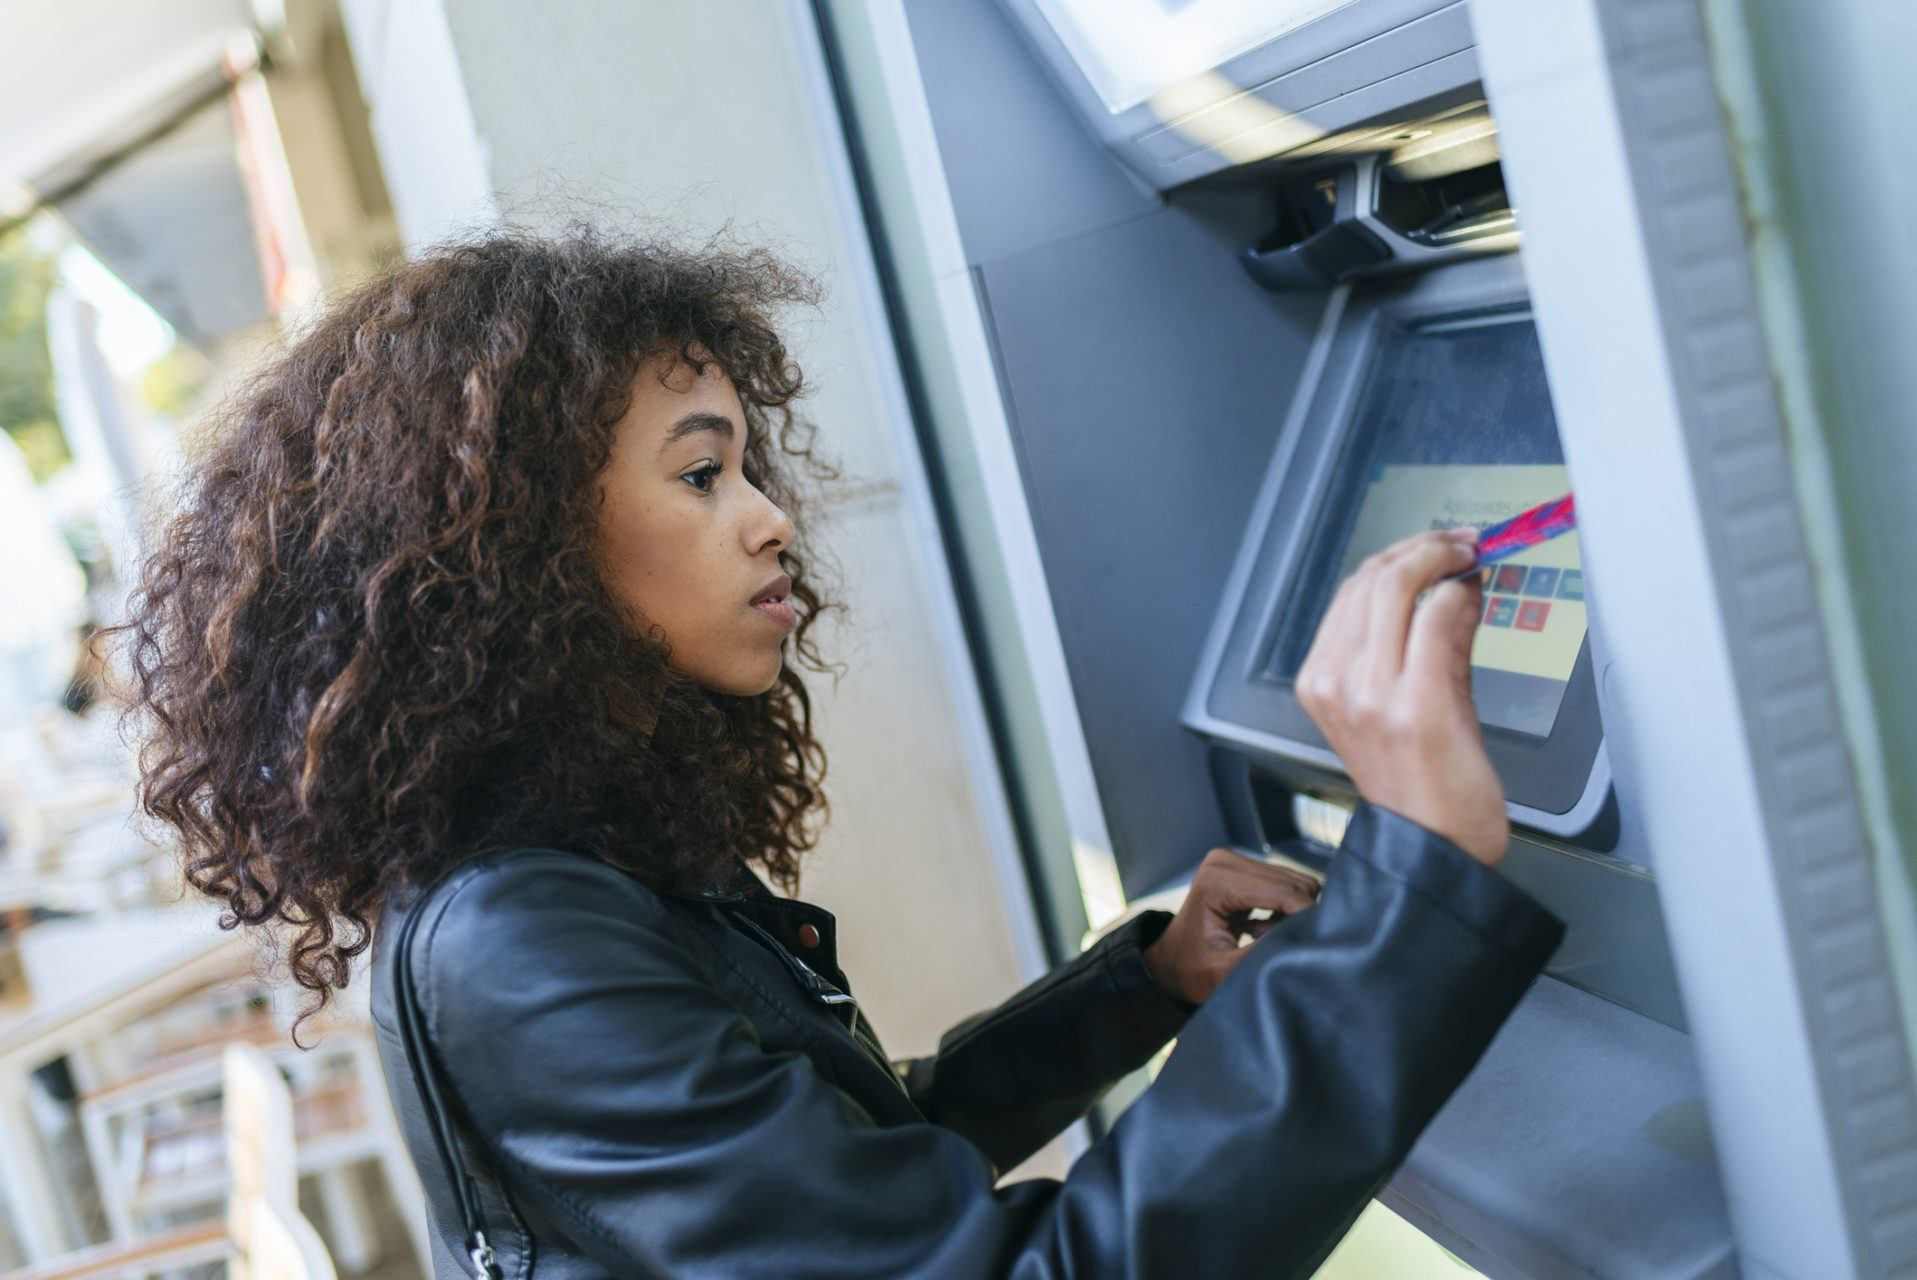 Woman using credit card at ATM